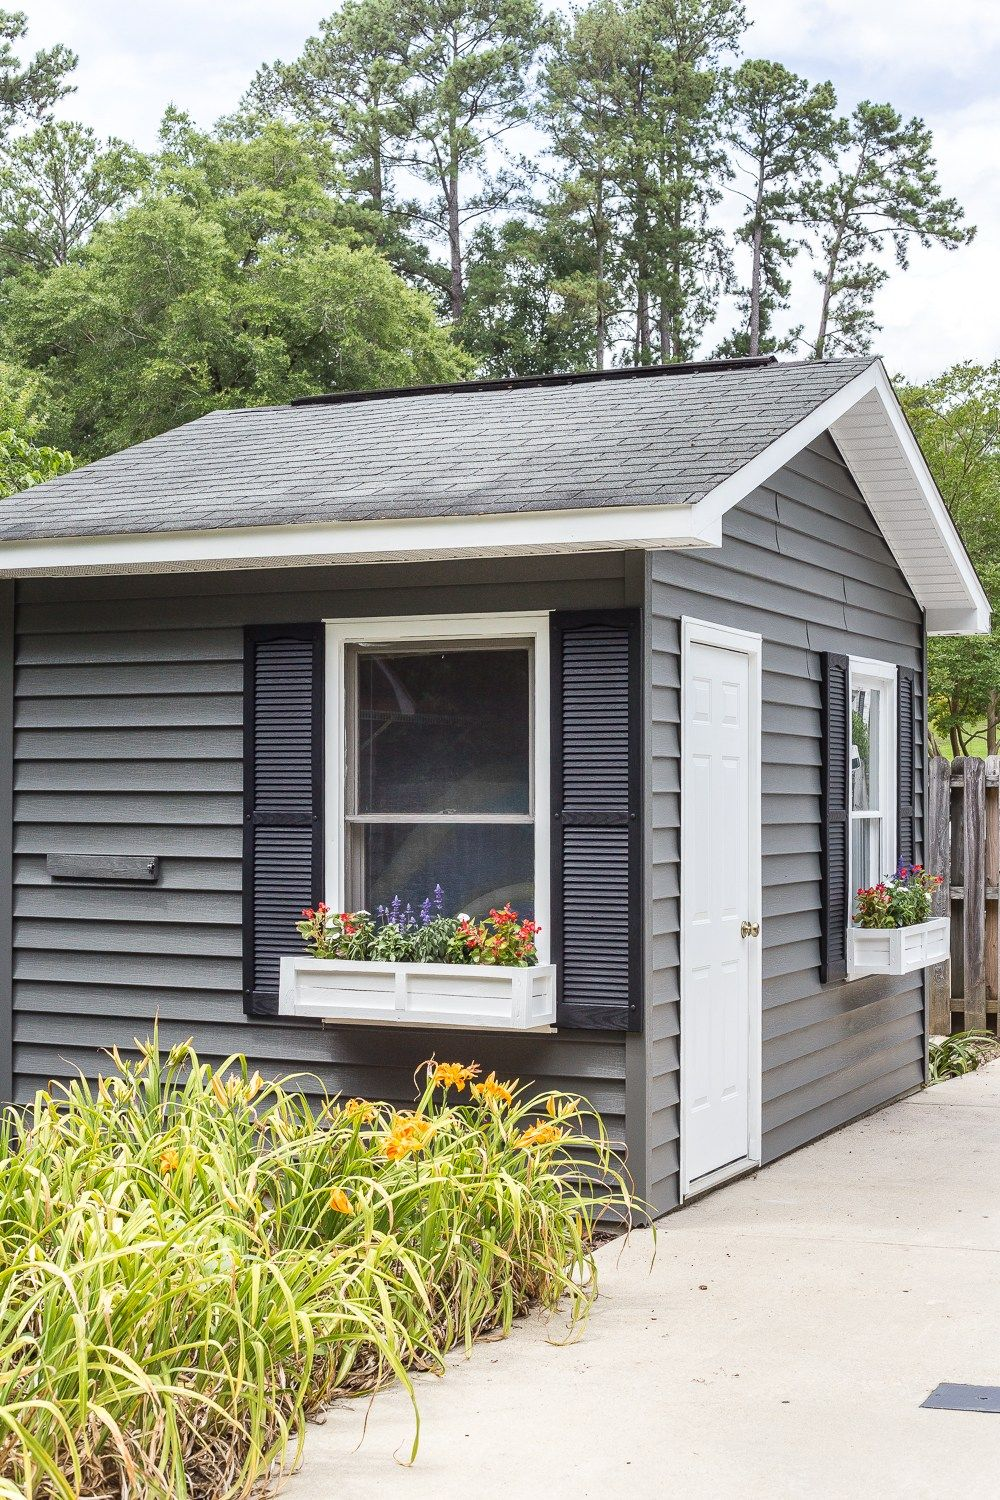 How To Paint Vinyl Siding Pool Shed Makeover Bless Er House In 2020 Pool Shed Shed Makeover Vinyl Siding